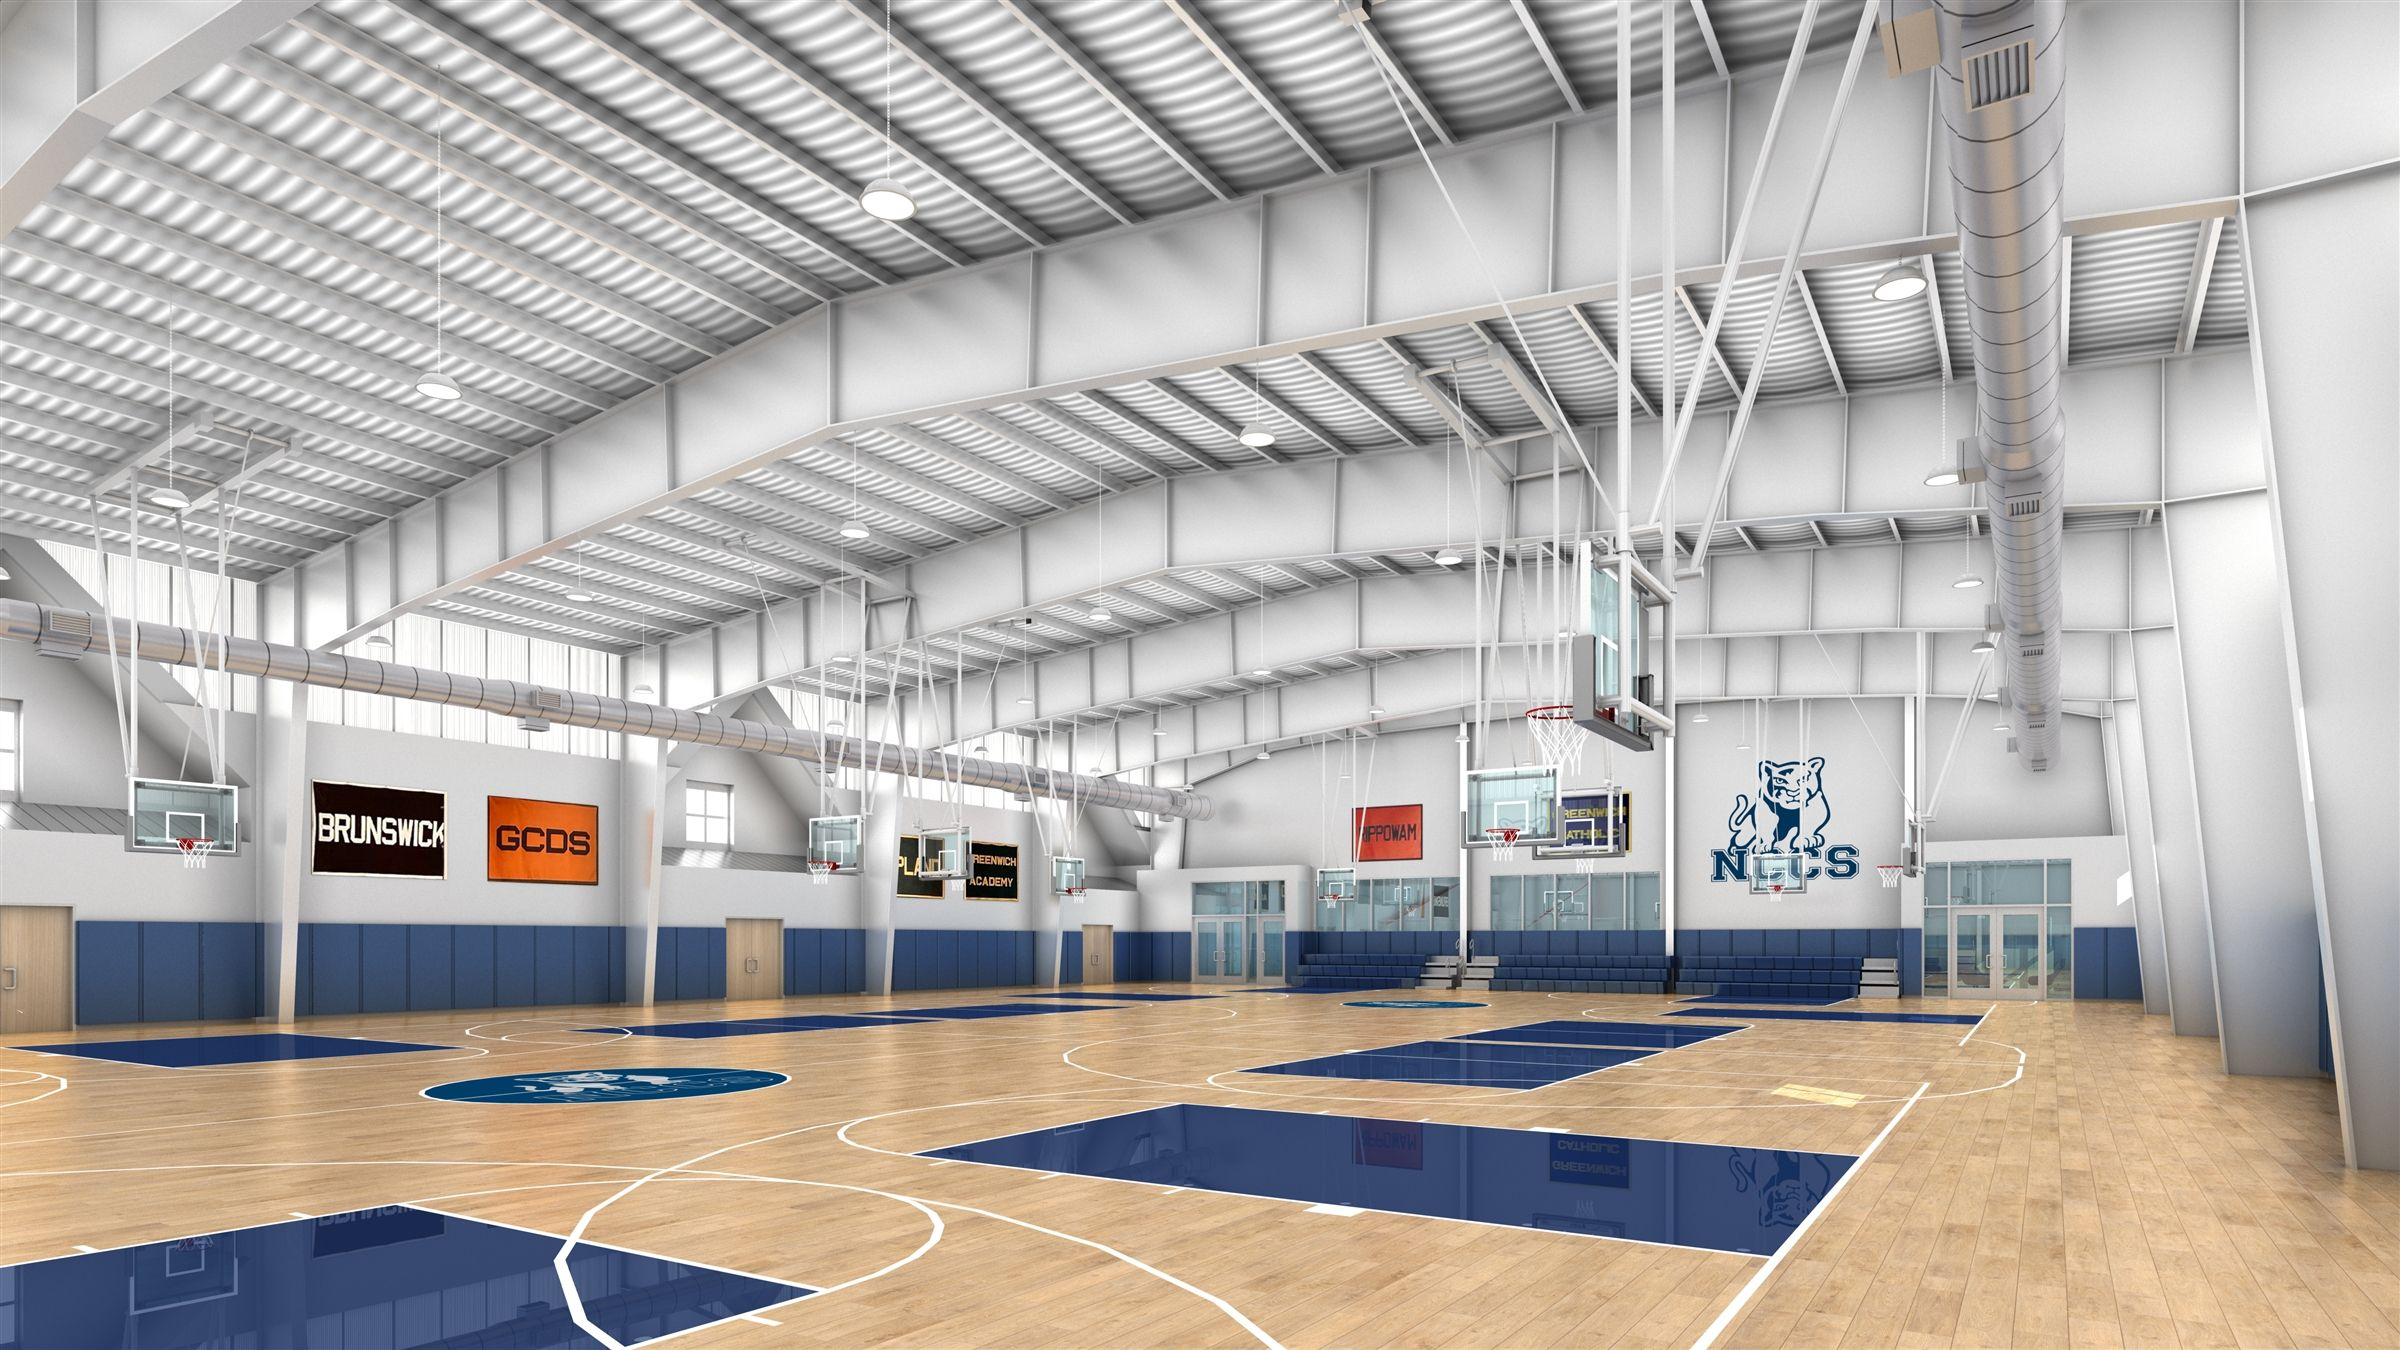 The new facility includes two full-size basketball and volleyball courts (which can turn into four practice courts), four squash courts, an expanded fitness center and a dance studio, as well as large student locker rooms.